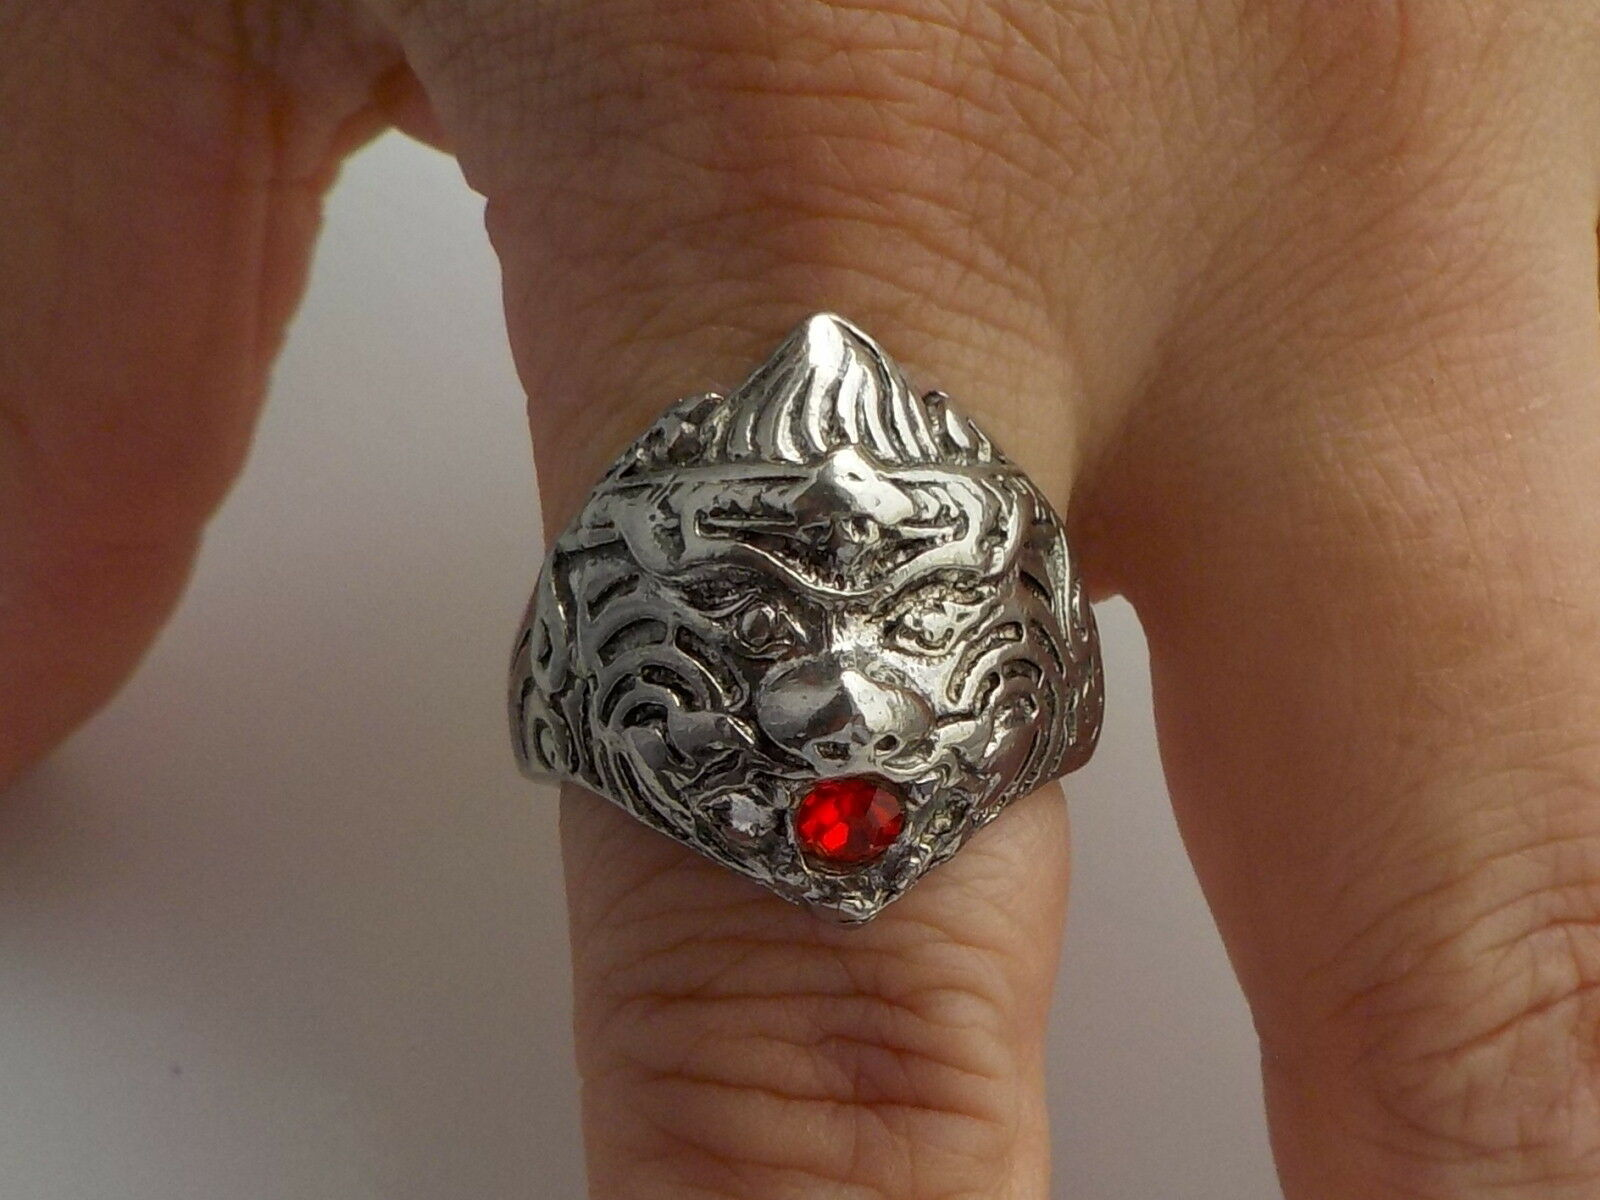 Crowned Lion Ring Beach Metal Detecting Find 2500 Picclick Uk Fun Detector To Findcoins At The